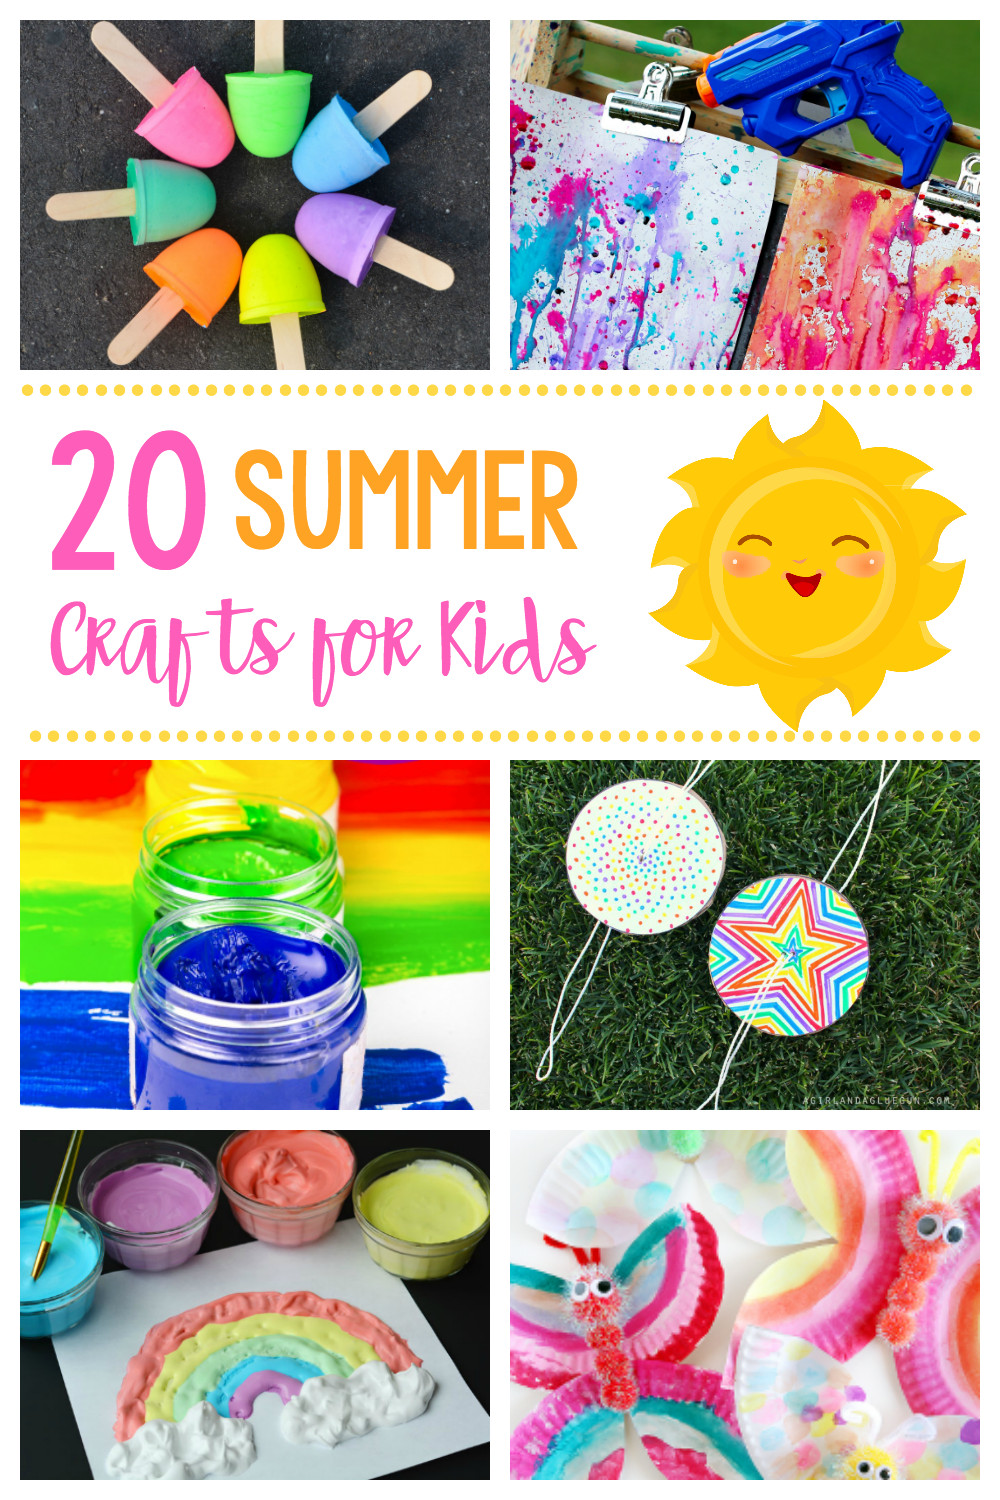 Best ideas about Easy Activities For Kids . Save or Pin 20 Simple & Fun Summer Crafts for Kids Now.